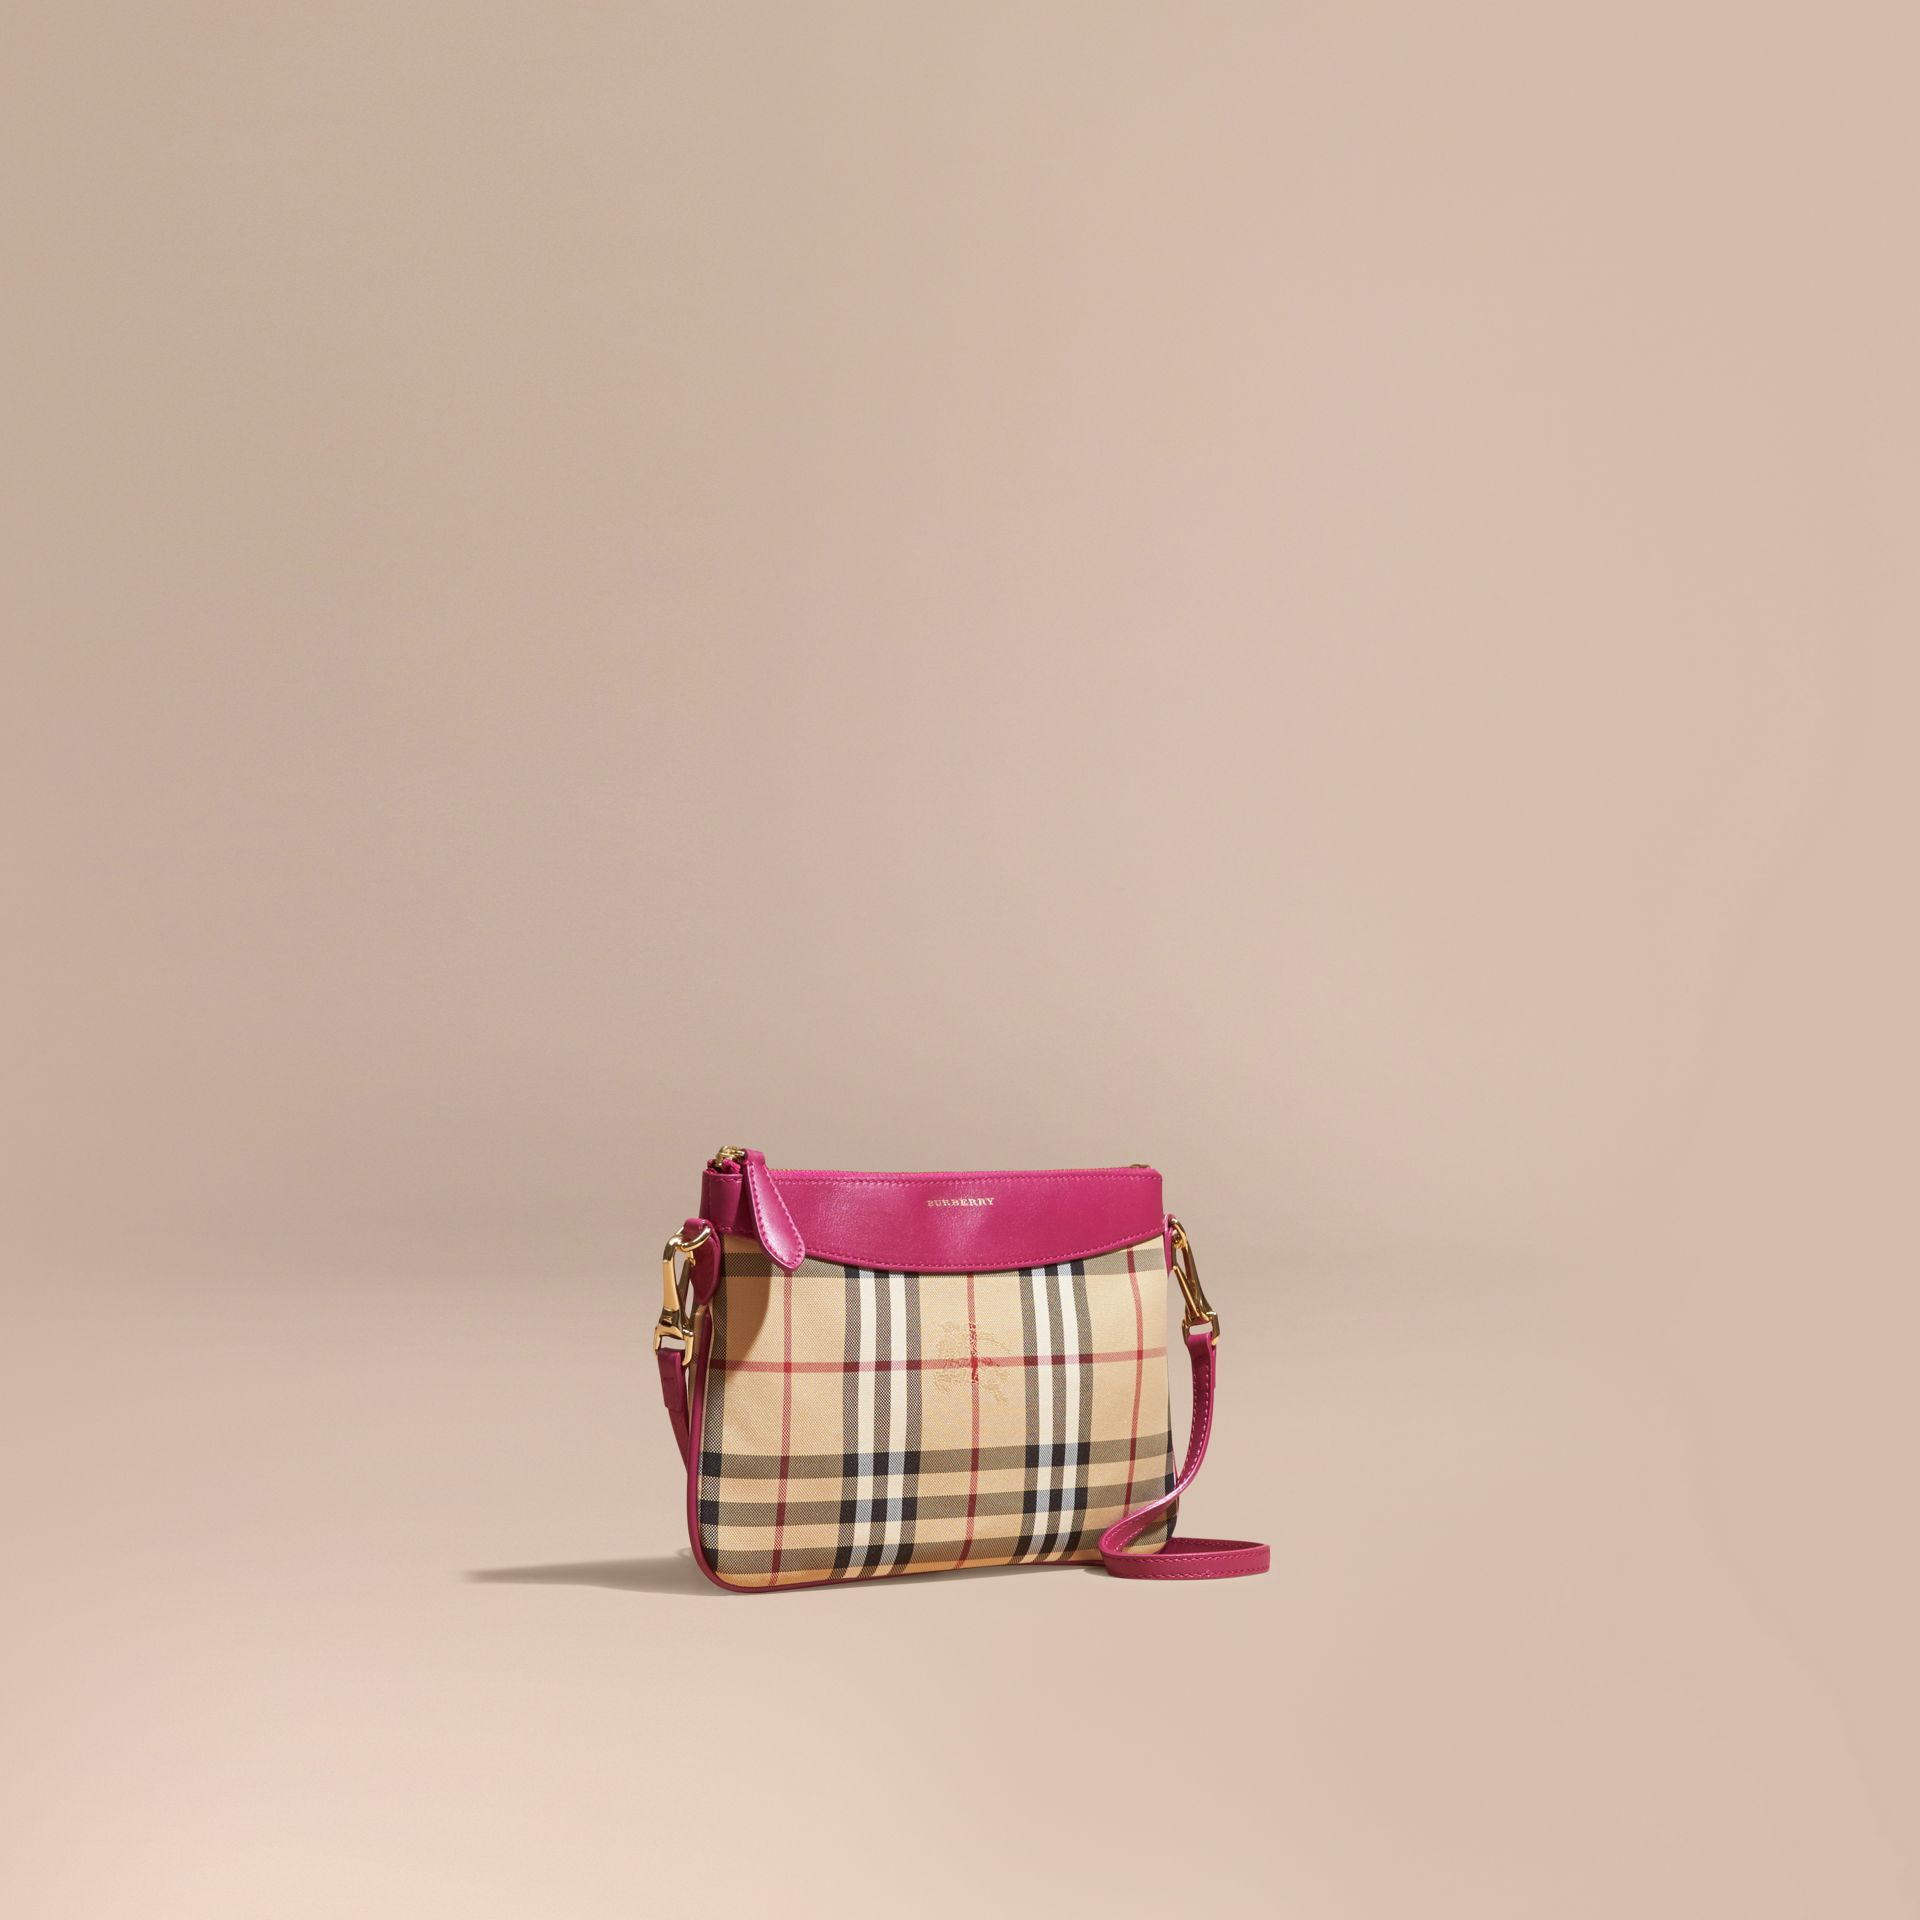 Brilliant fuchsia Horseferry Check and Leather Clutch Bag Brilliant Fuchsia - gallery image 1